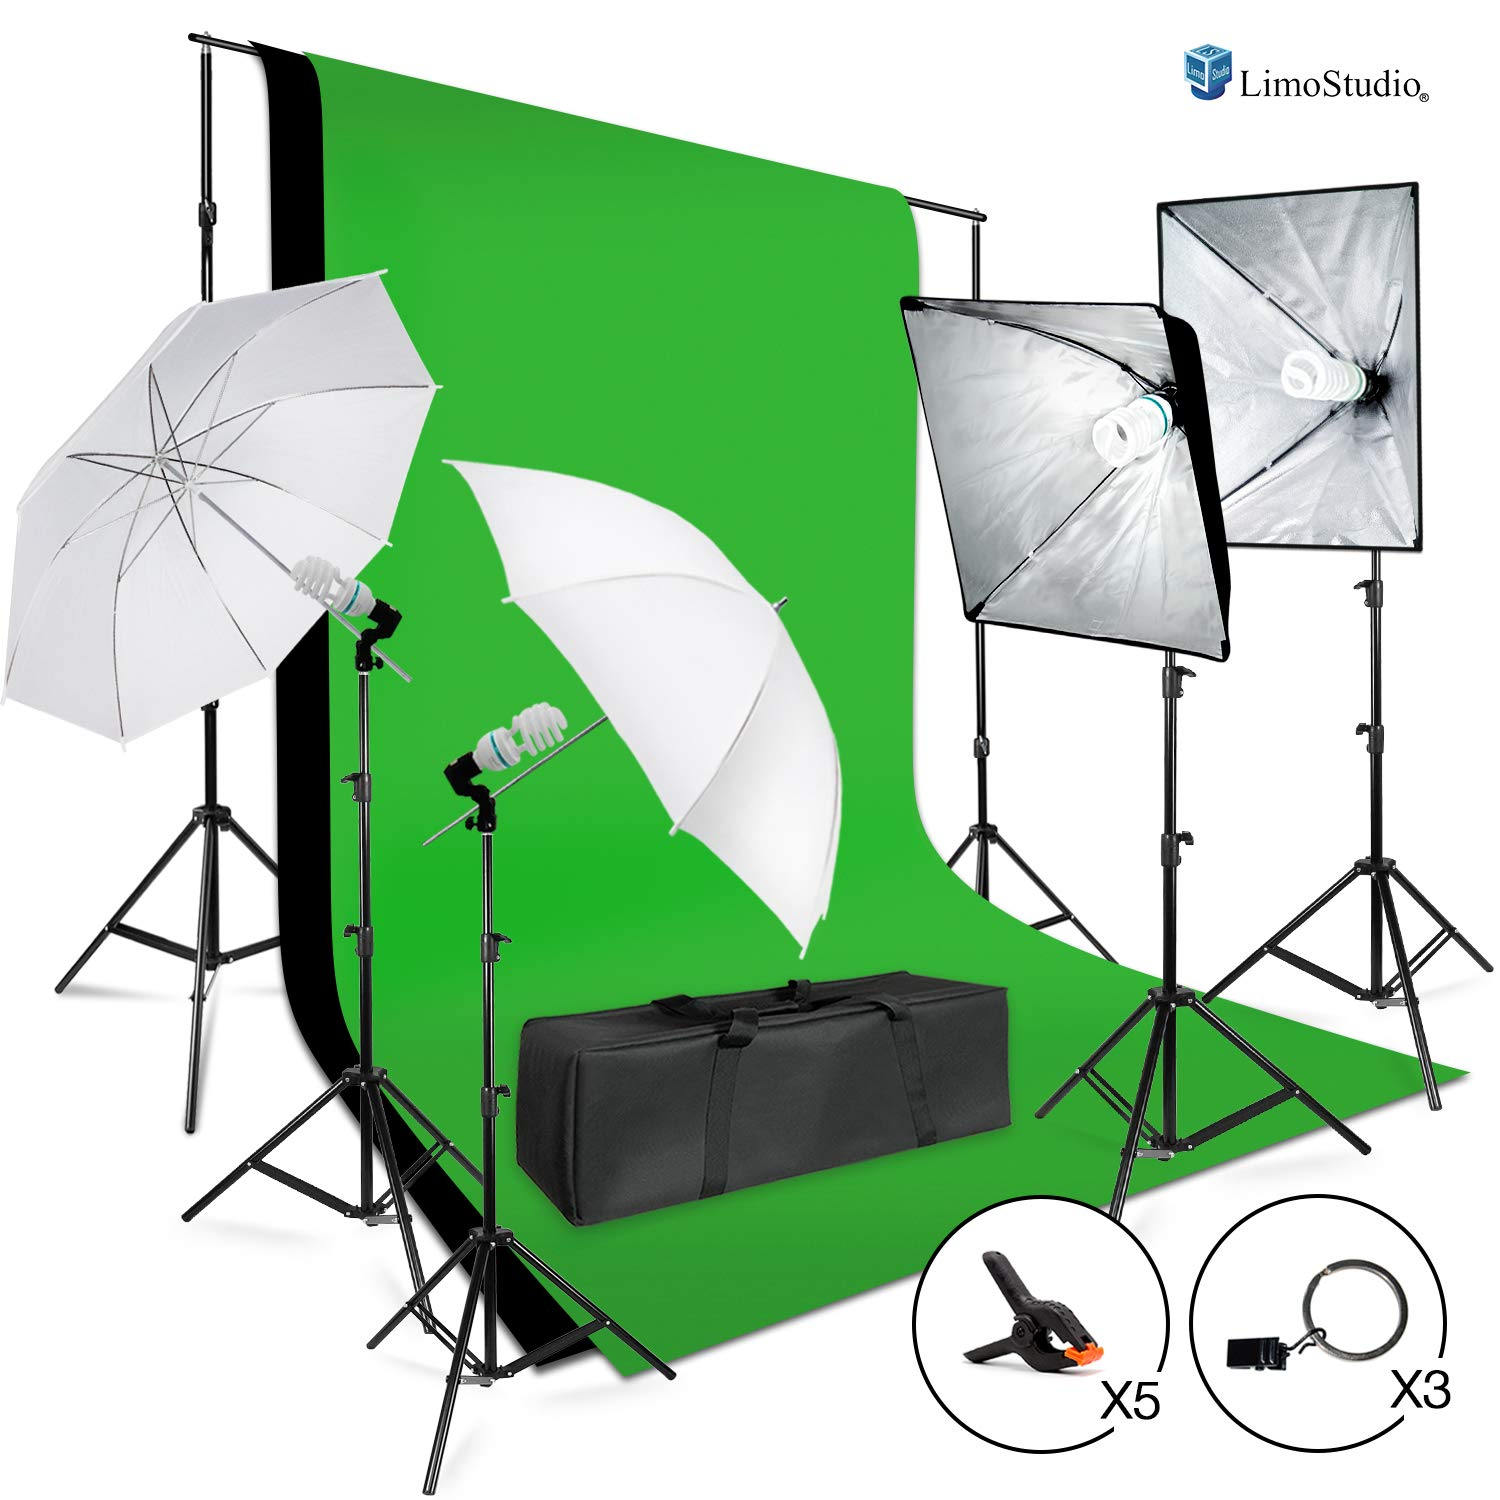 LimoStudio Photo Shooting Kit with Background Support System & Umbrella Softbox Lighting Kit, Photo Video Studio, AGG1388 by LimoStudio